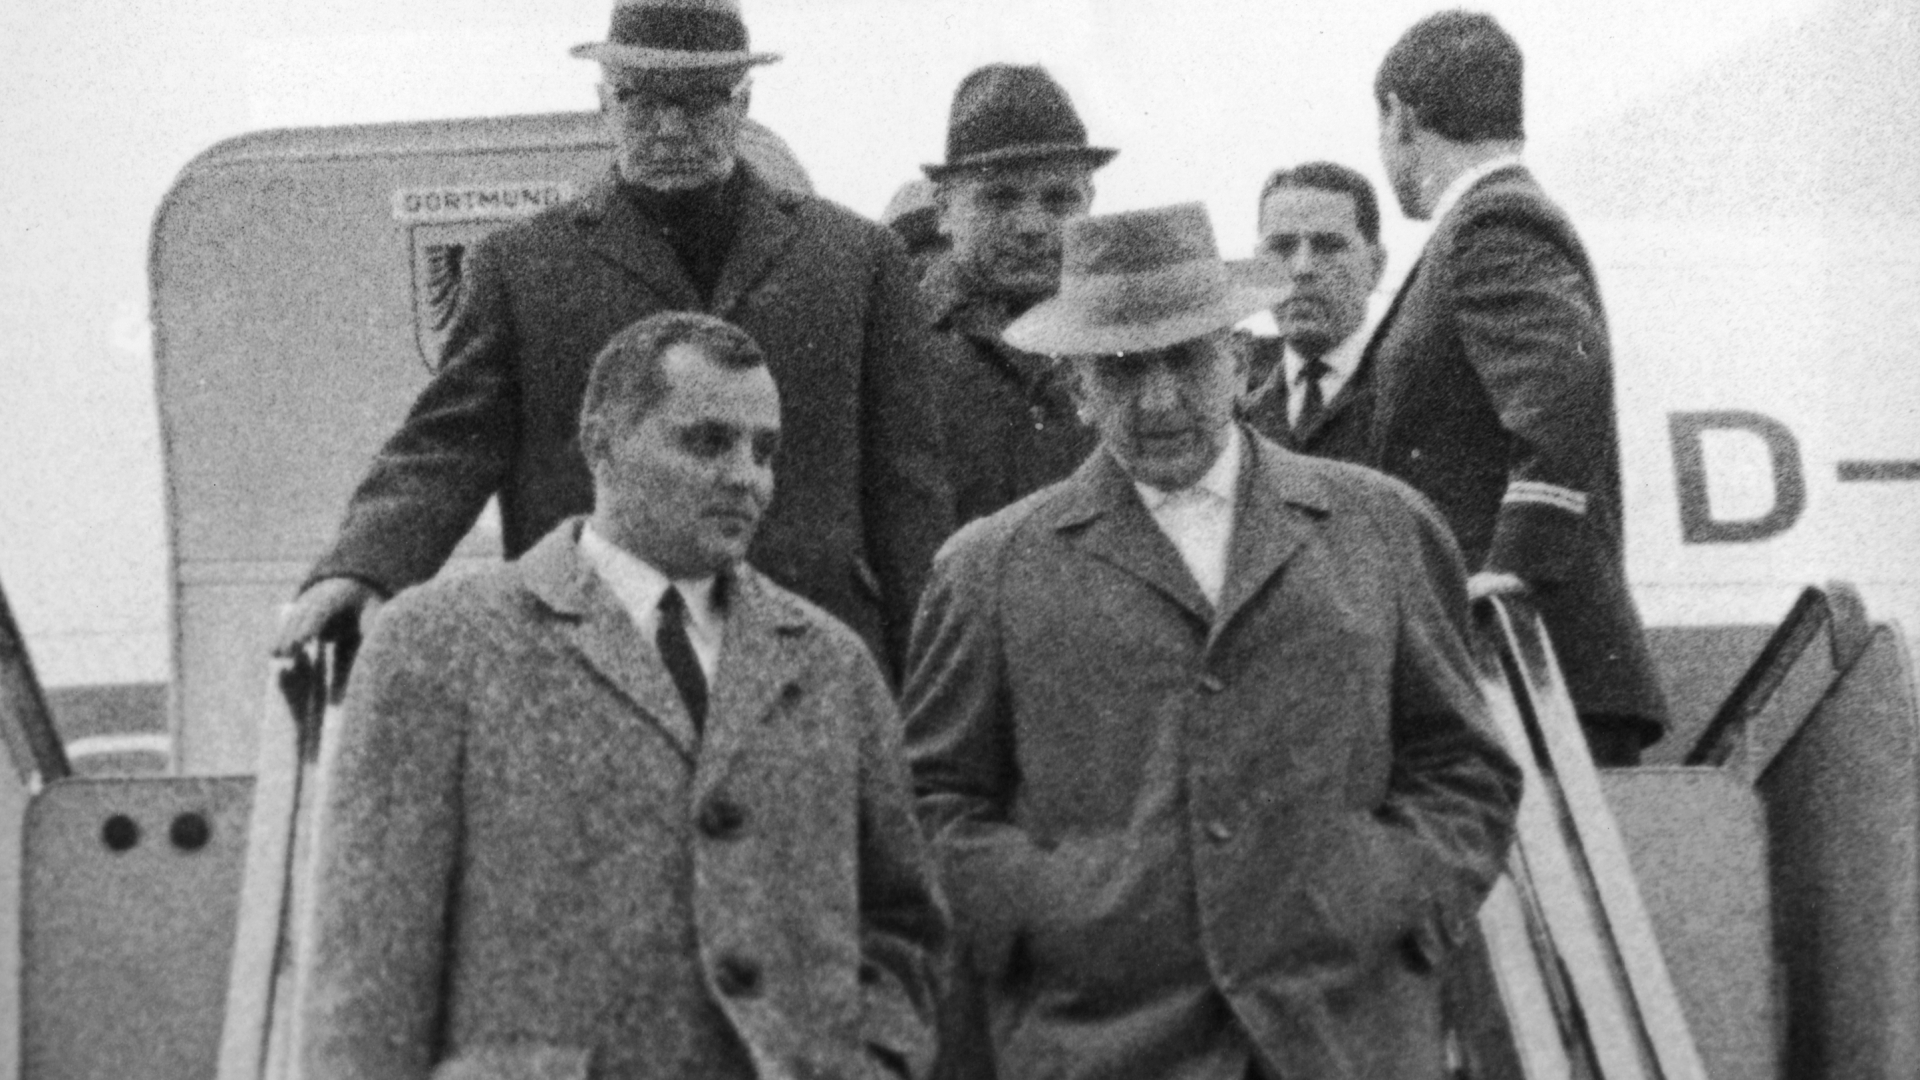 Gerhard Bohne (right) arriving at Frankfurt Airport from Buenos Aires, accompanied by two officials of the district criminal board of Wiesbaden. Bohne would be prosecuted for administering the Nazi's euthanasia program aimed at purifying the Aryan race of people with physical infirmities and mental disabilities. (Credit: Keystone/Getty Images)